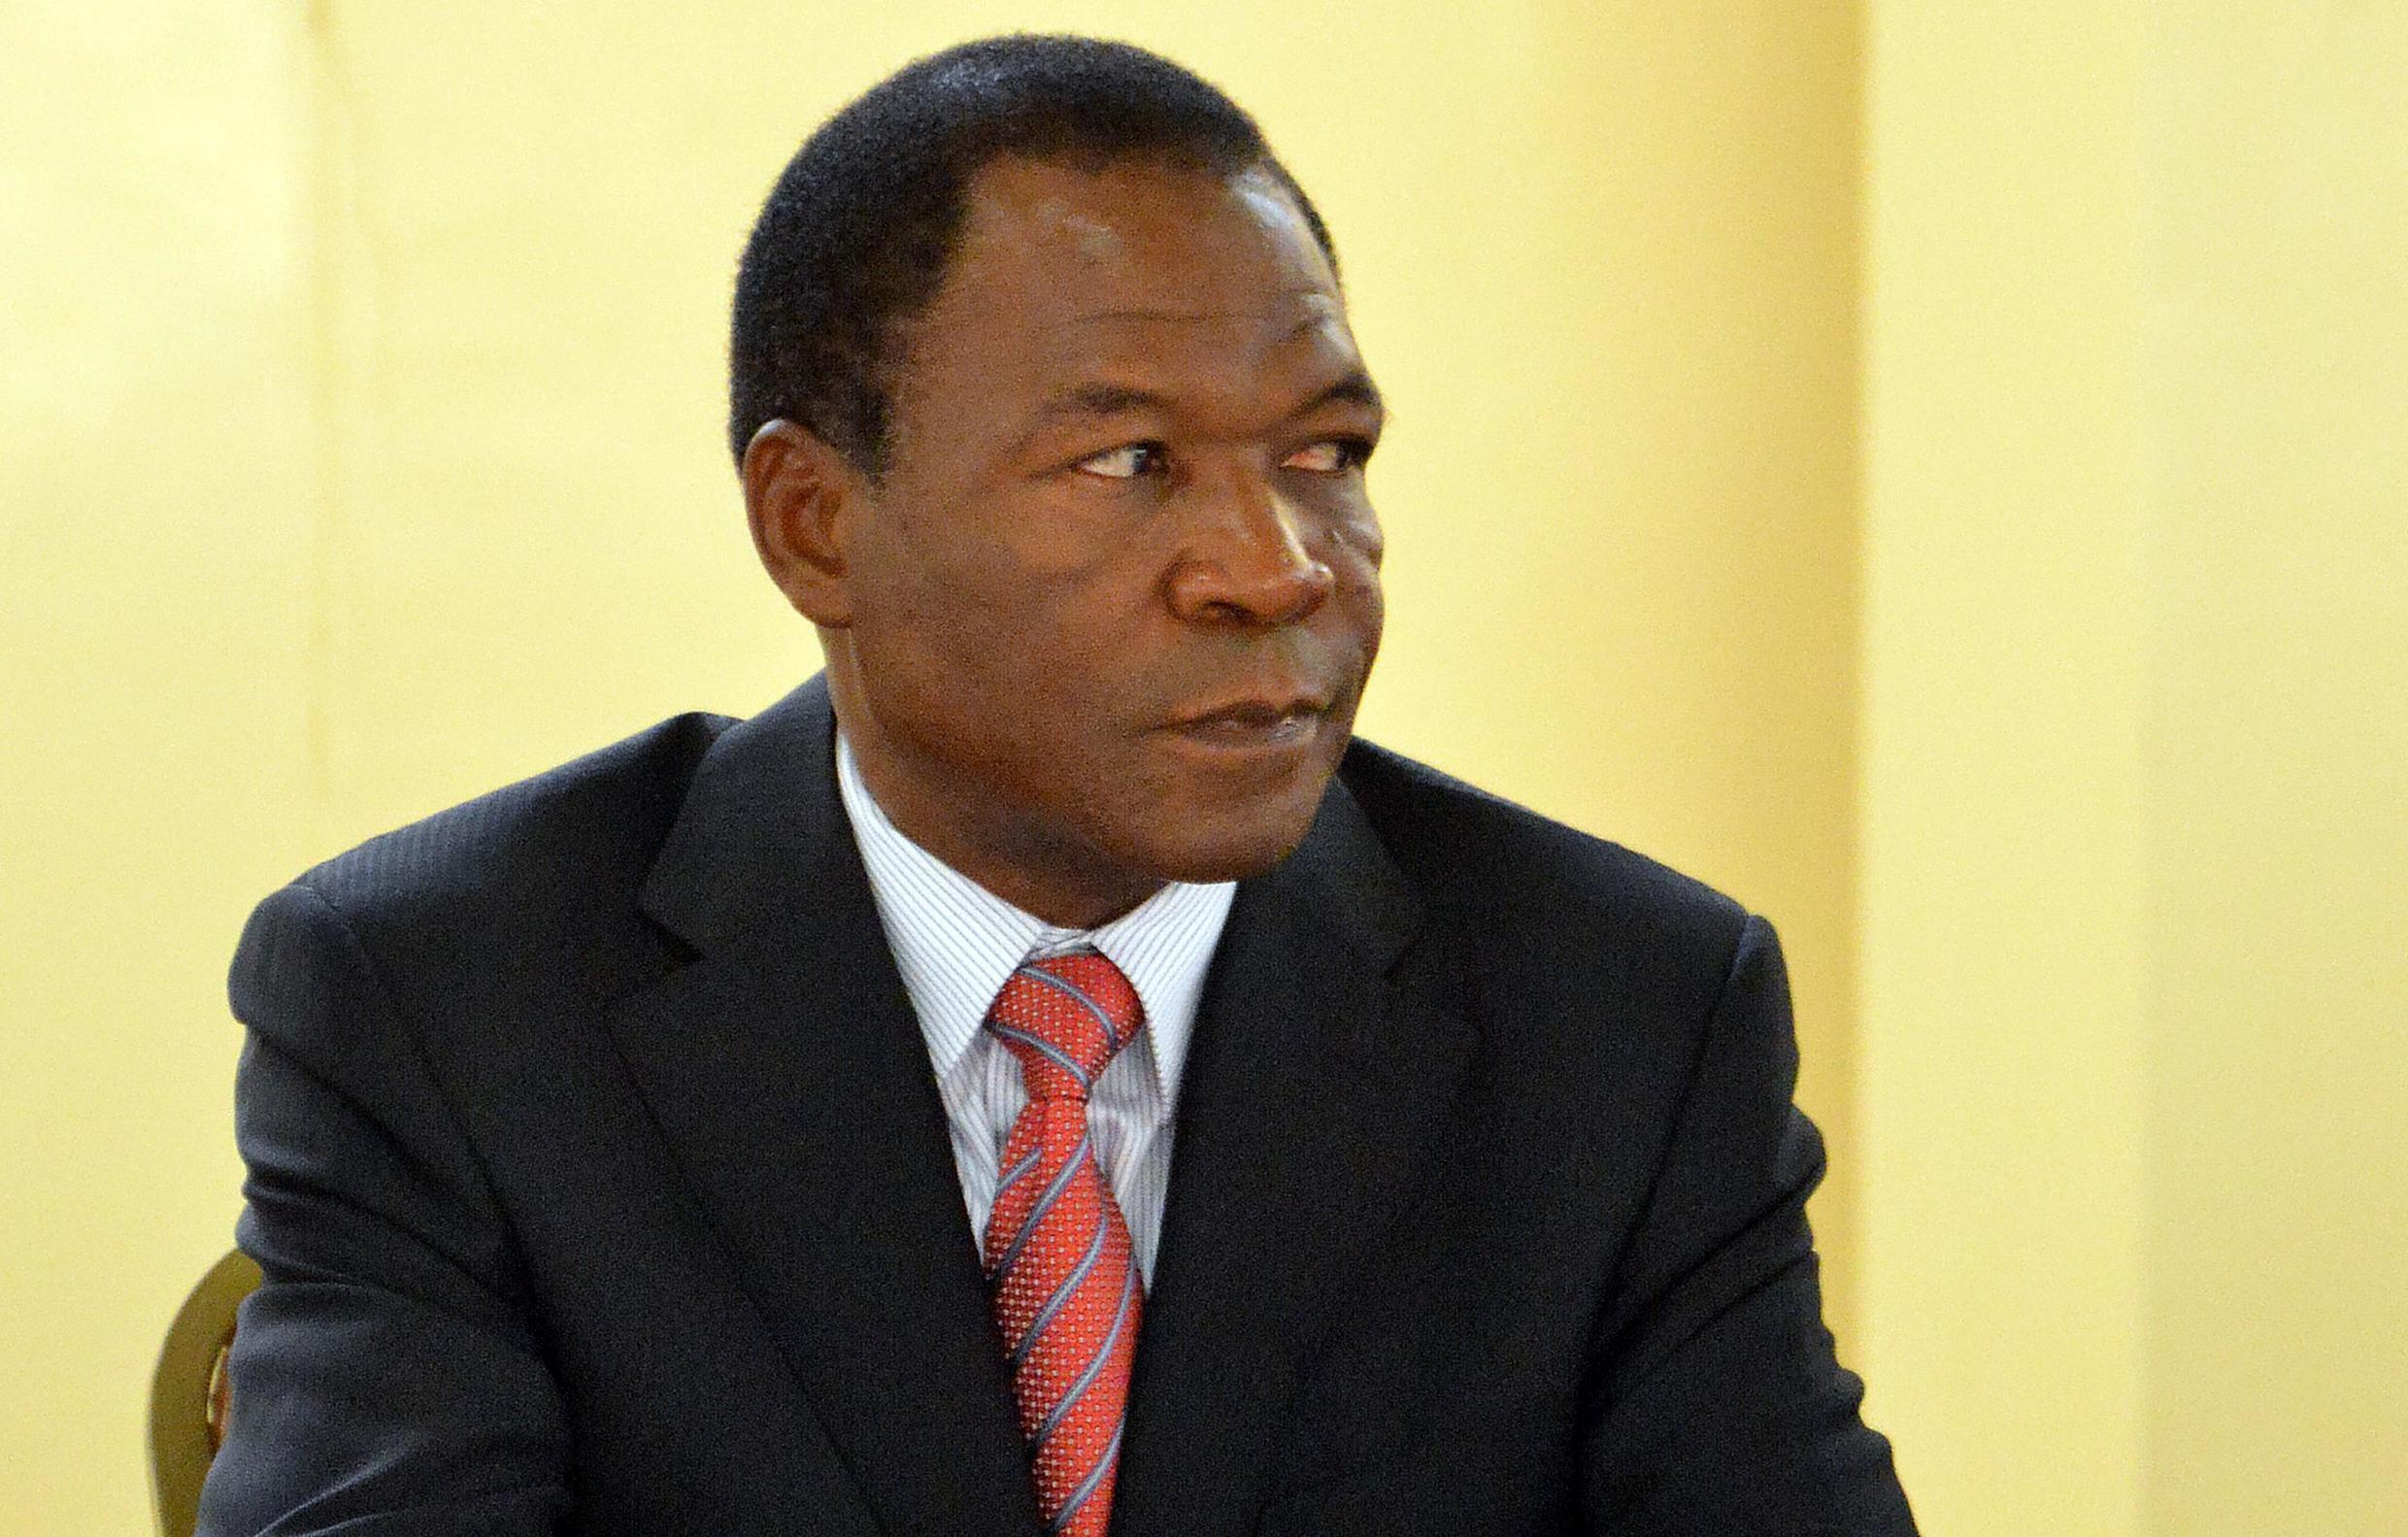 Francois Compaoré, brother of the deposed Burkinabe President Blaise Compaoré, looks on during a summit in Ouagadougou in December 2012.